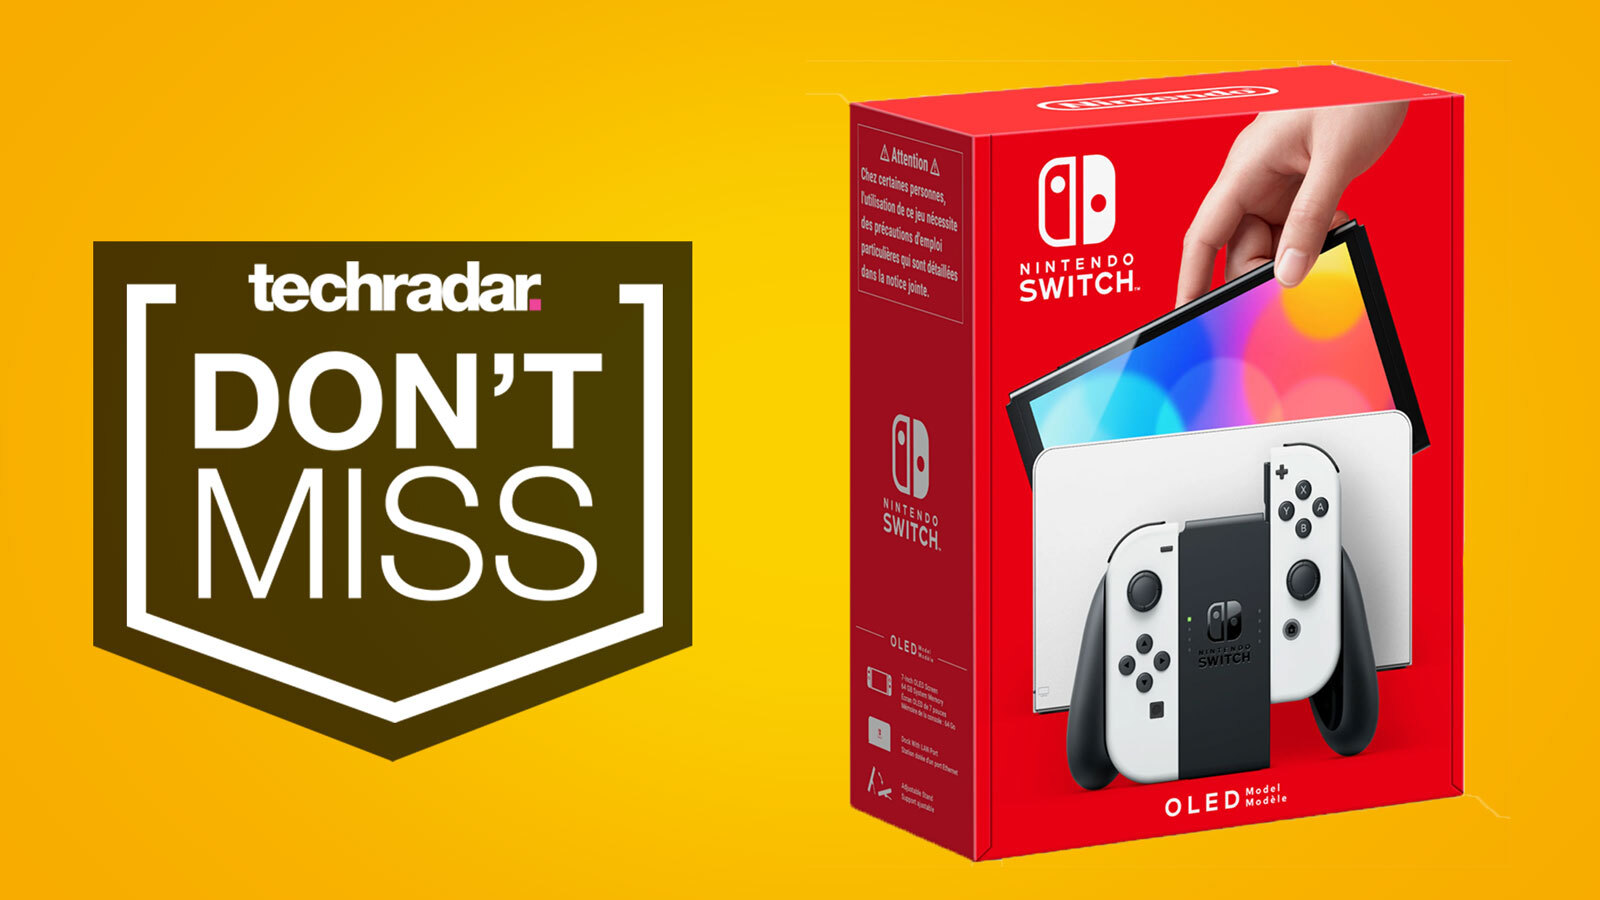 nintendo-switch-oled-pre-order-update:-it's-still-in-stock-–-where-to-buy-it-today